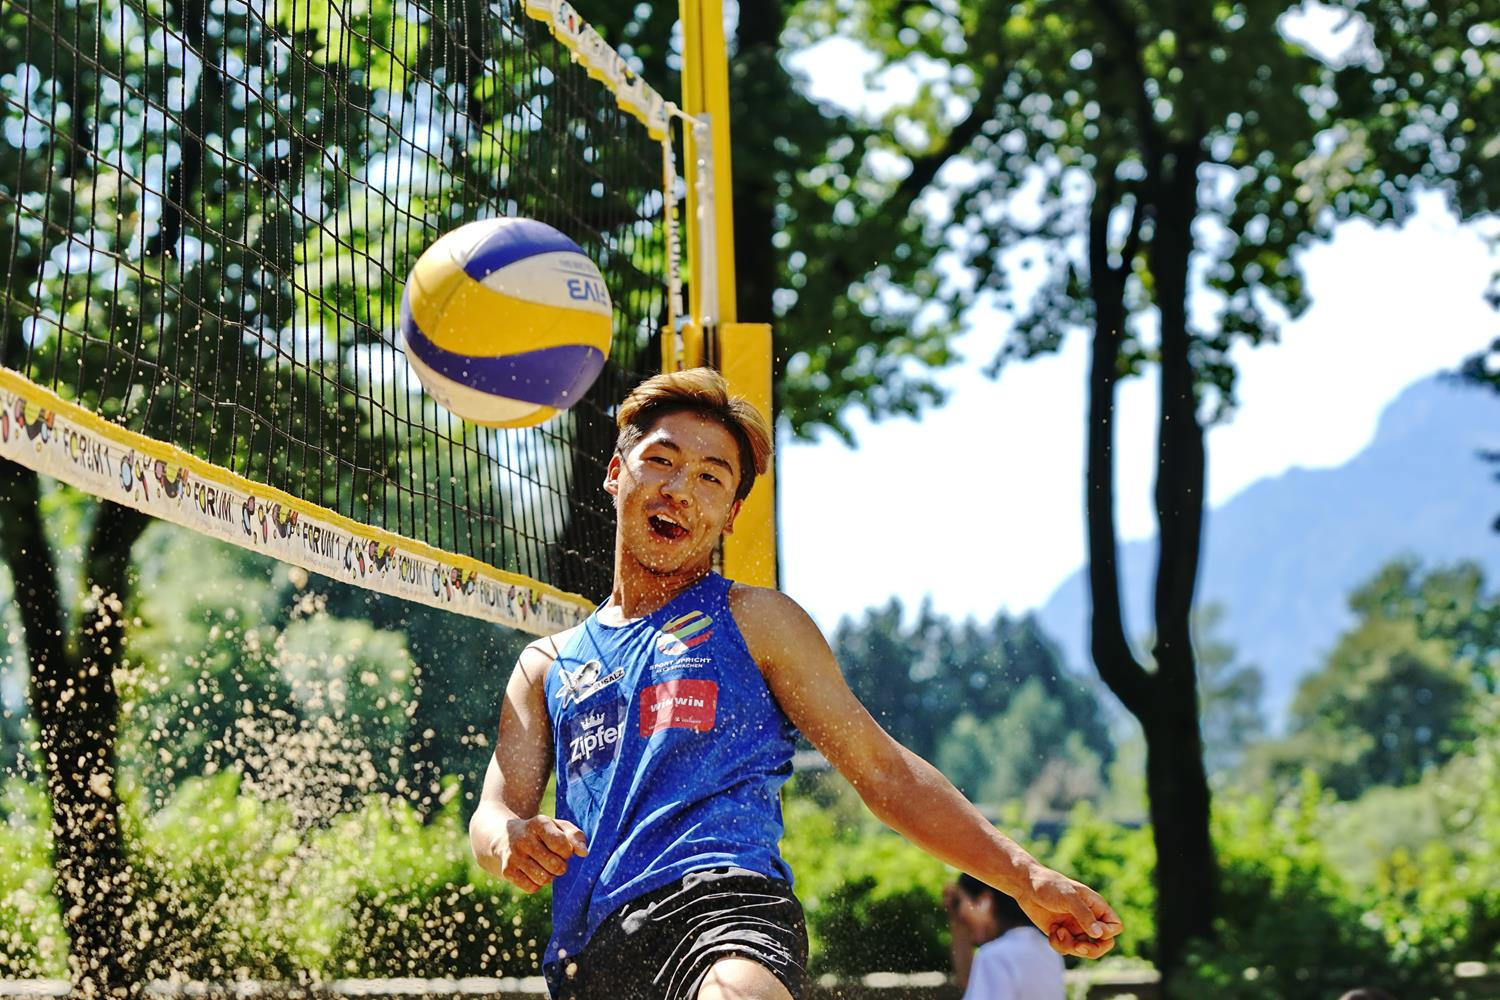 20160904_FMT_SSAS_ Vollyball_KJ (2) (Copy)